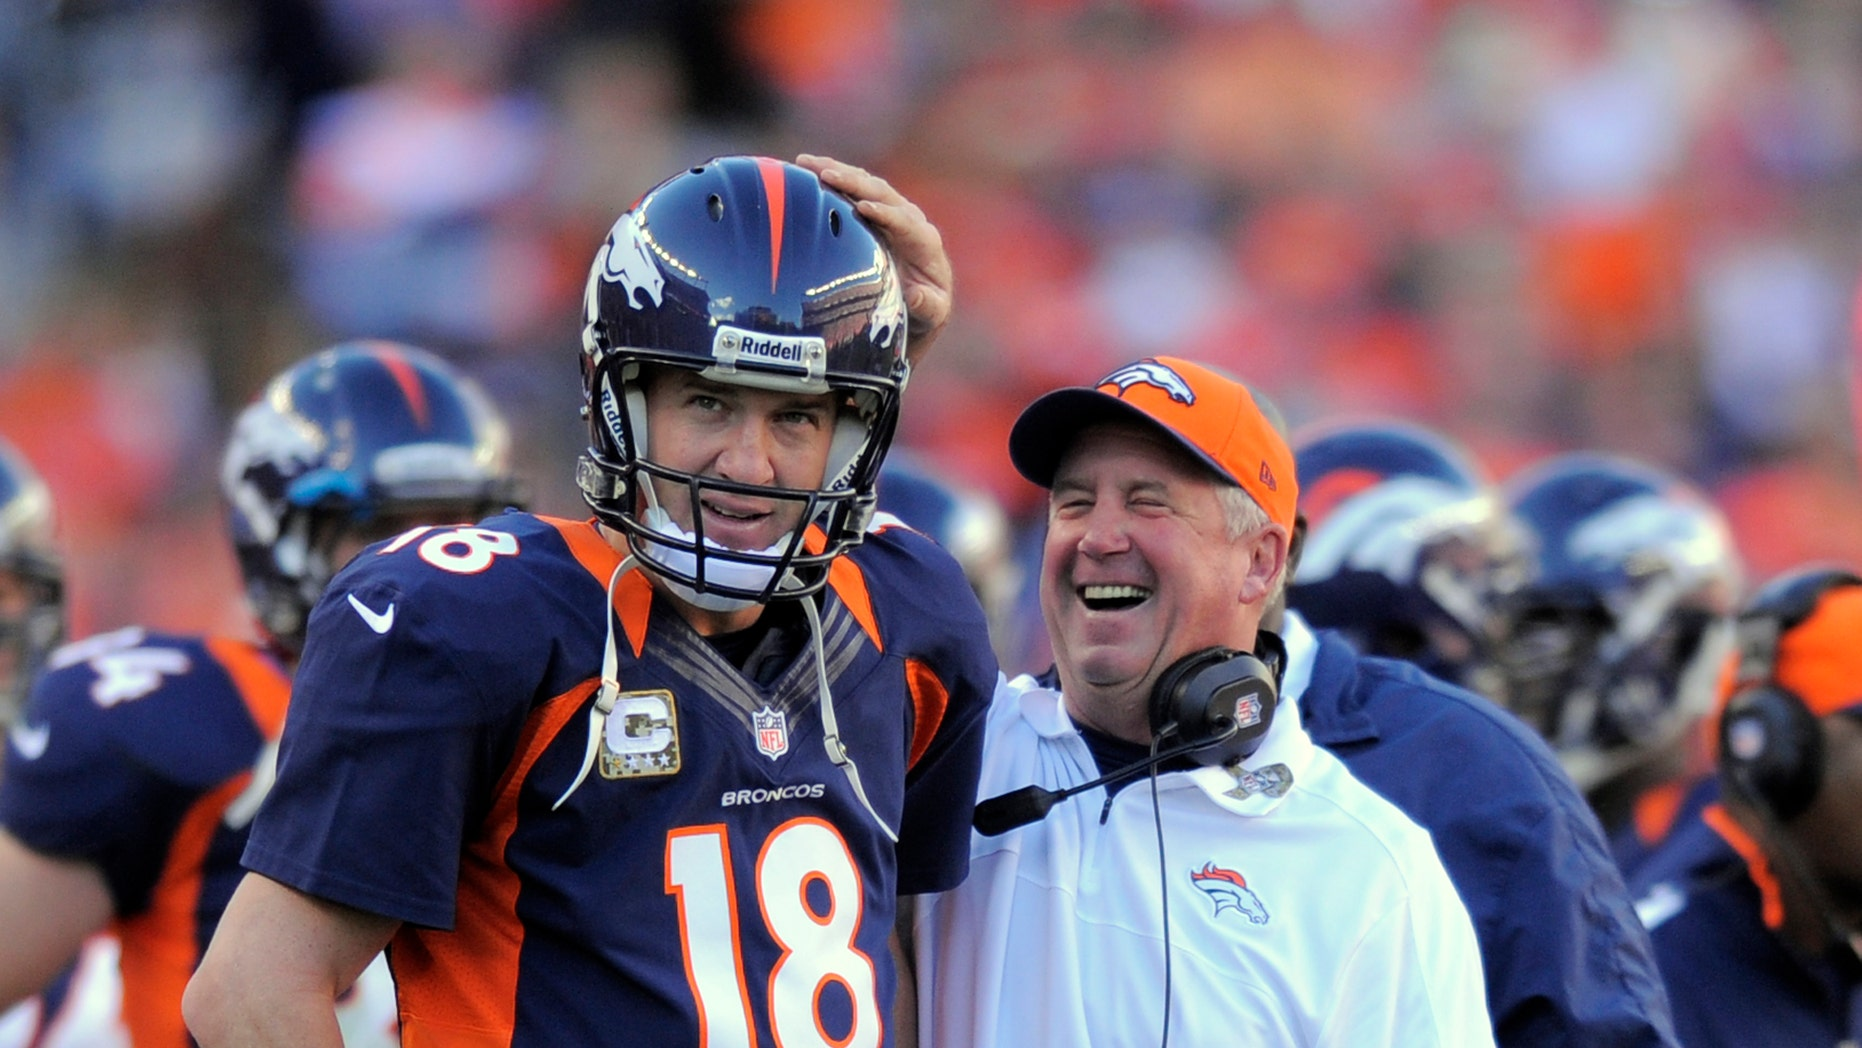 FILE - In this Nov. 17, 2012, file photo, Denver Broncos quarterback Peyton Manning (18) looks on as head coach John Fox celebrates during an NFL football game between the Denver Broncos and the San Diego Chargers in Denver. The Broncos have reeled off nine consecutive wins after a 2-3 start. (AP Photo/Jack Dempsey, File)